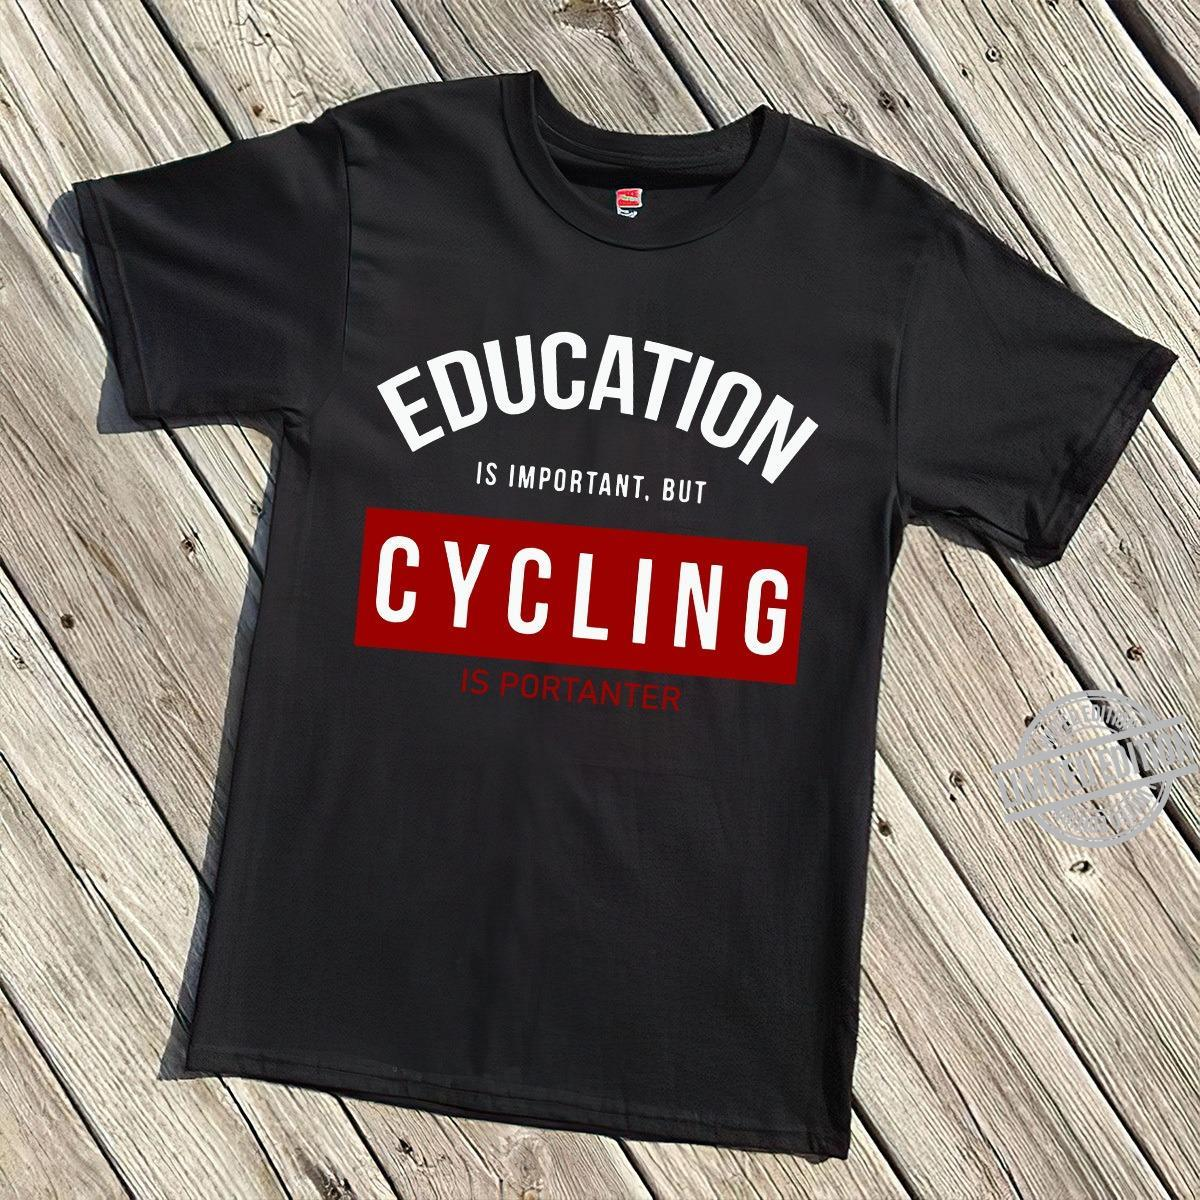 Education Is Important But Cycling Is Portanter Shirt